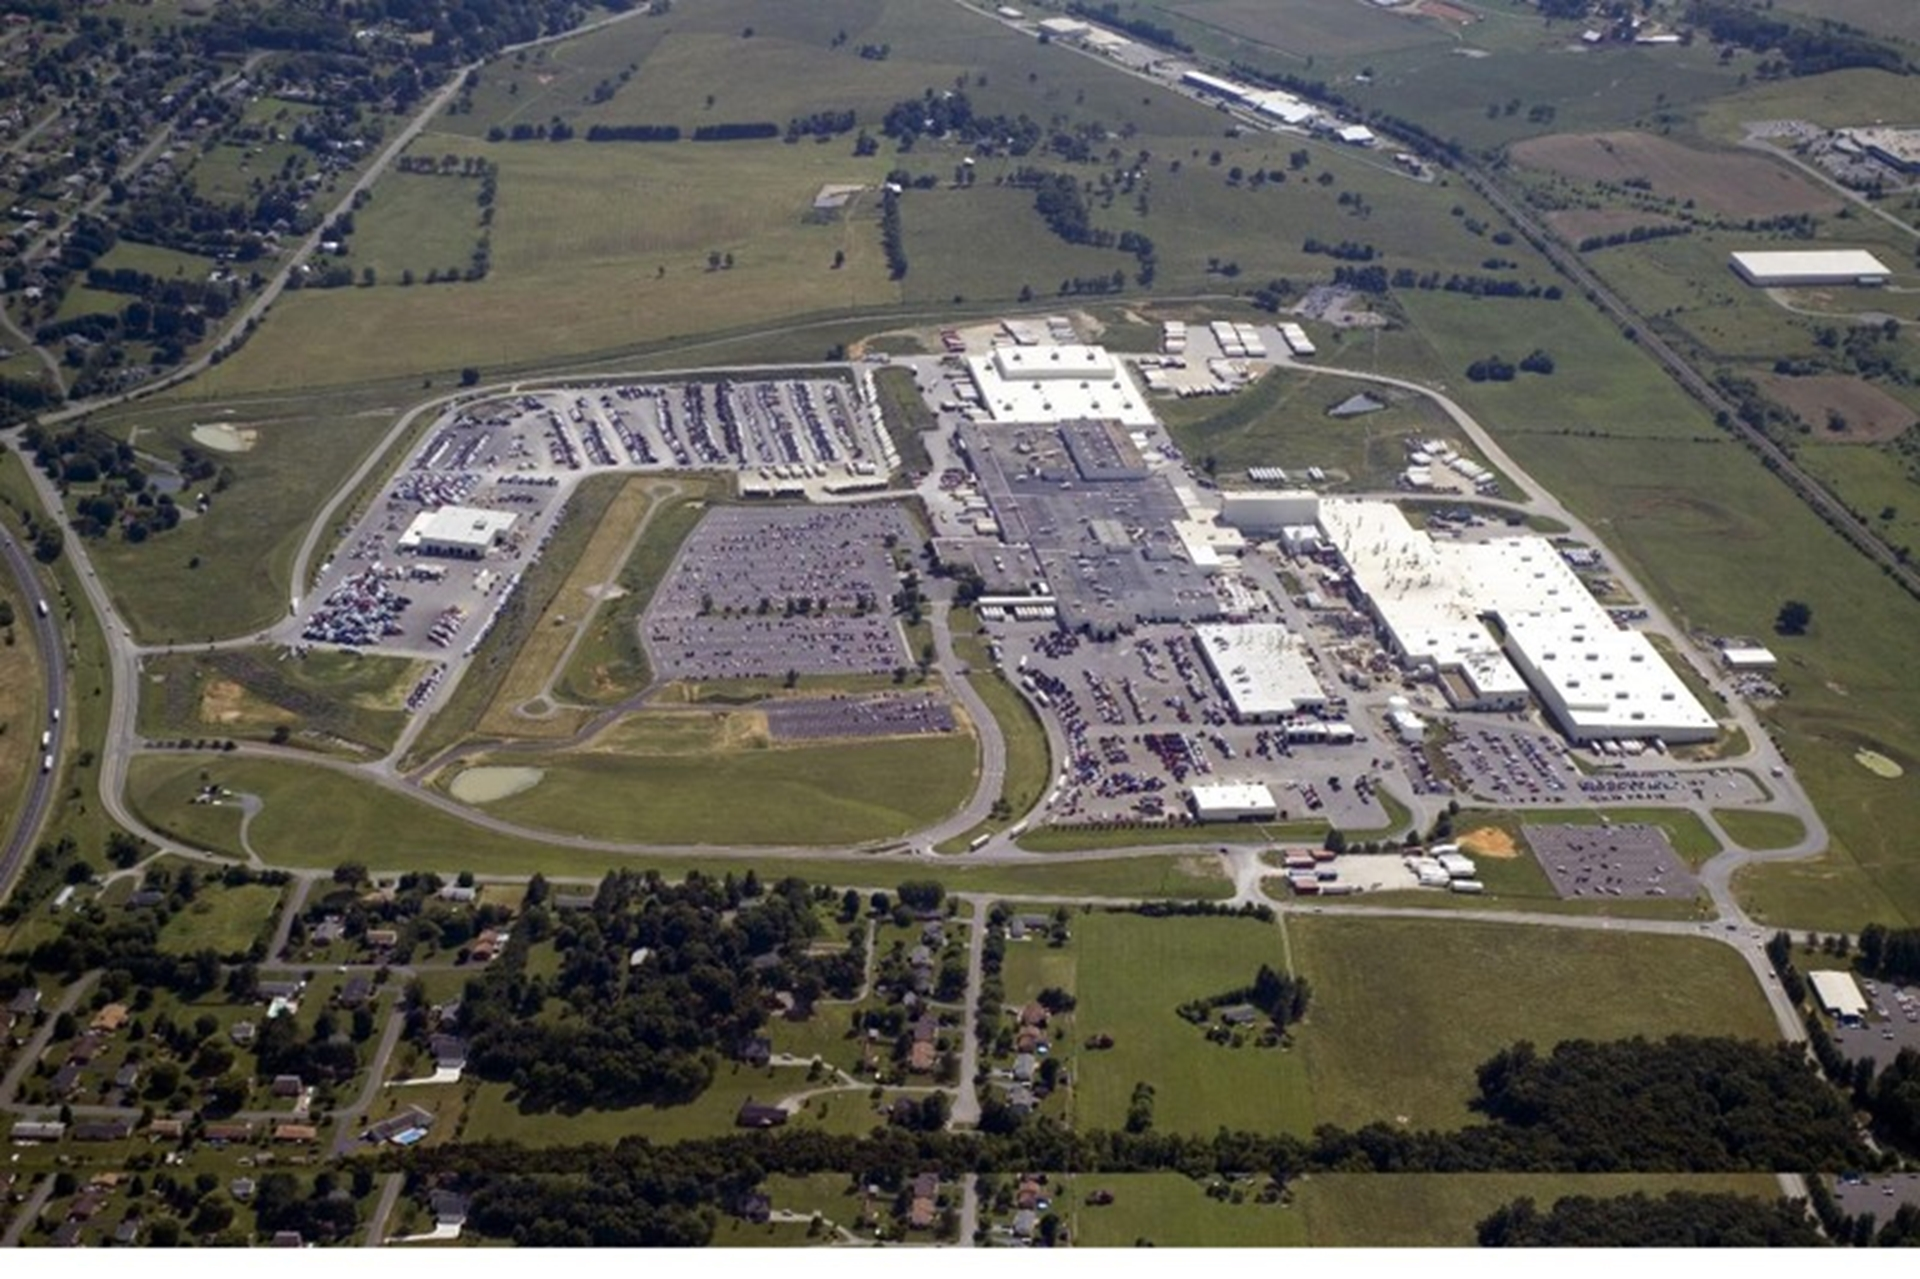 New River Valley assembly plant aerial